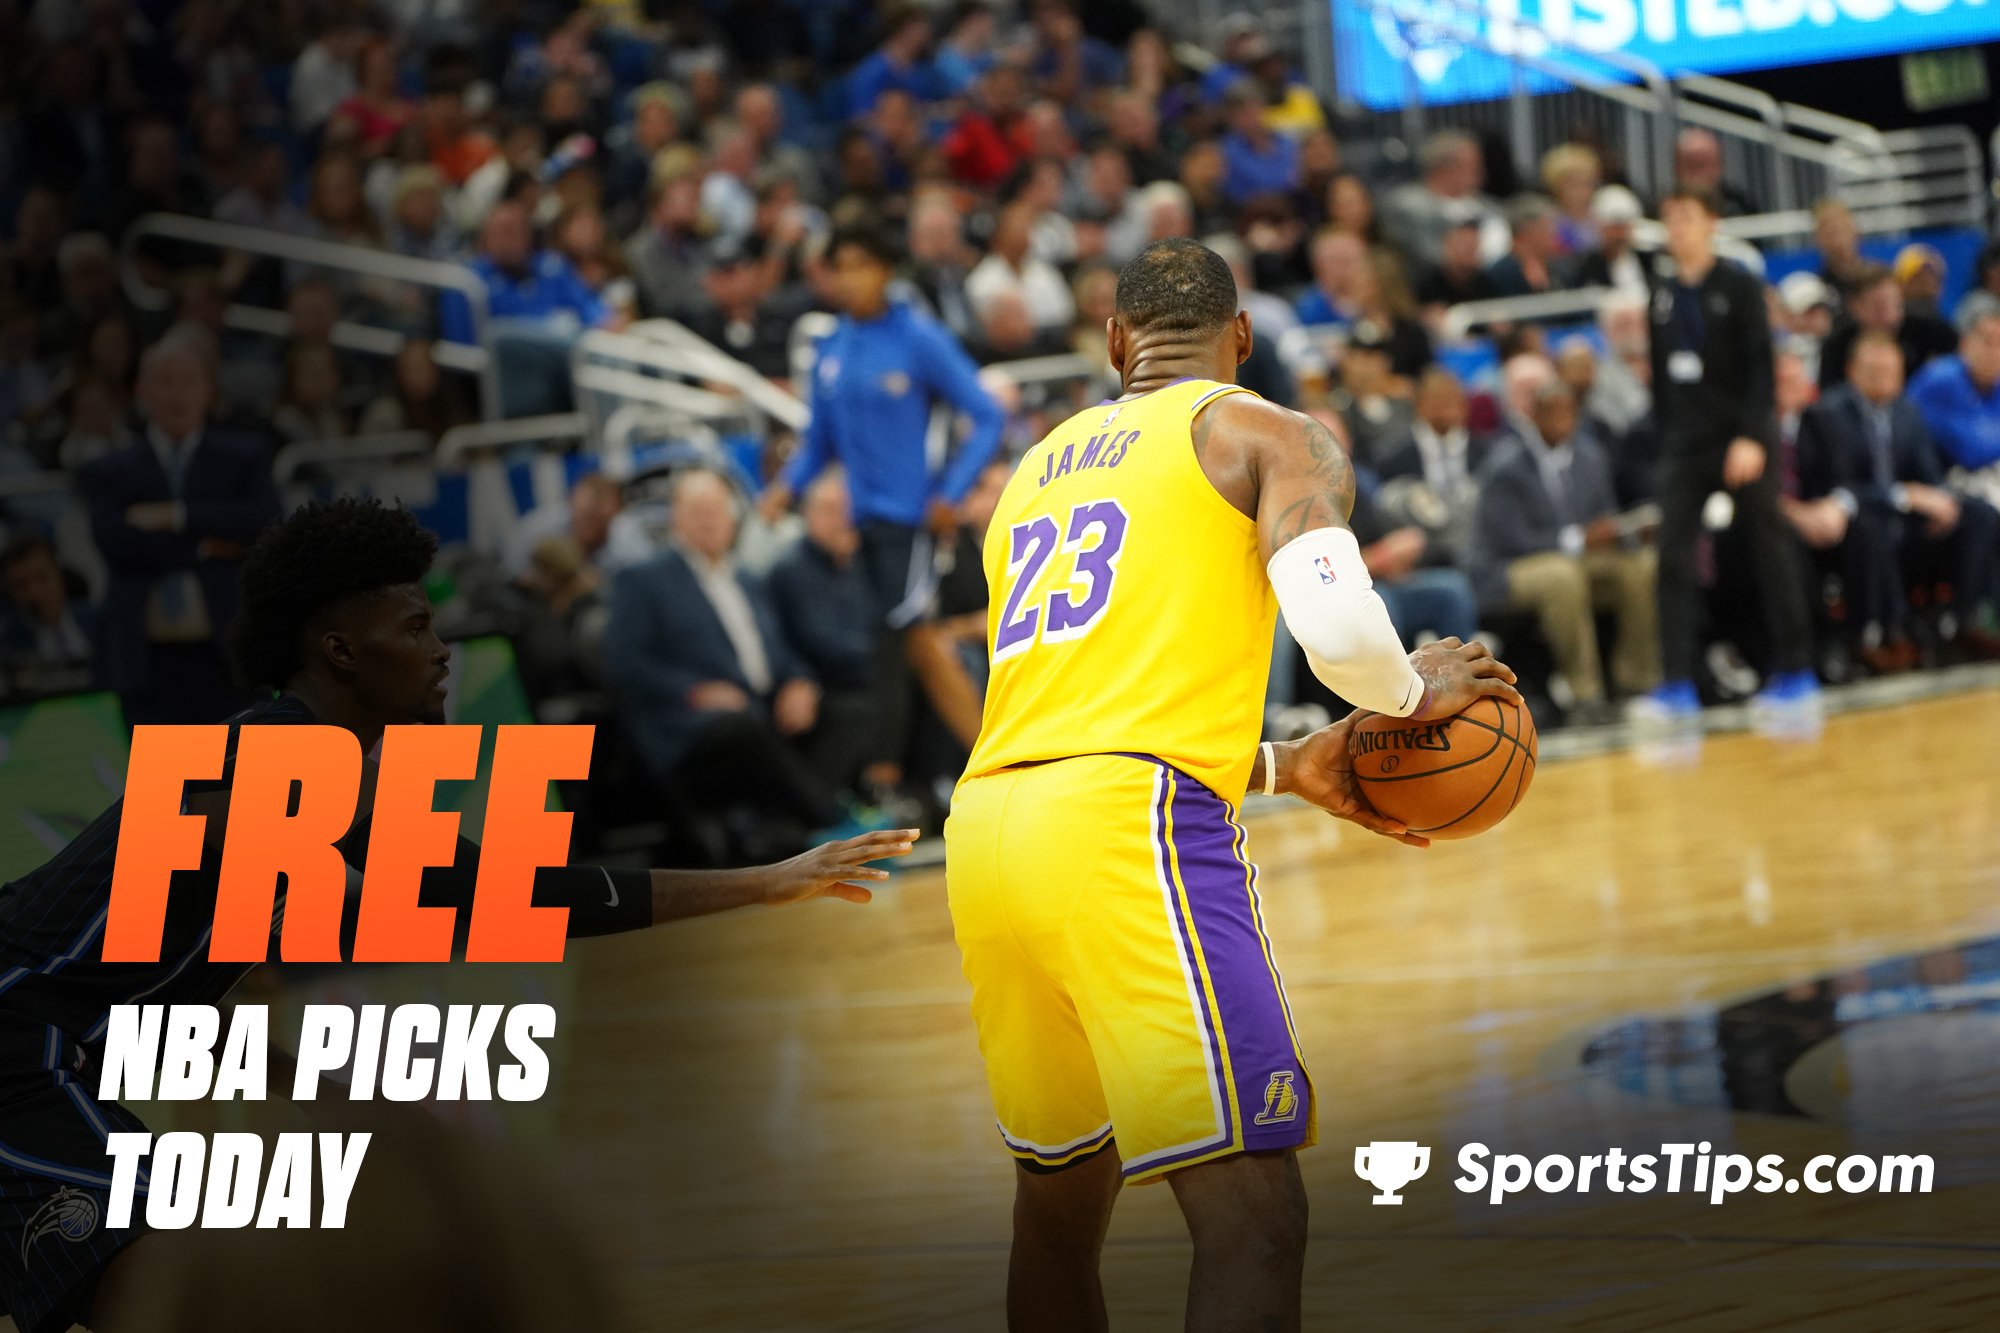 Free NBA Picks Today for Thursday, March 18th, 2021